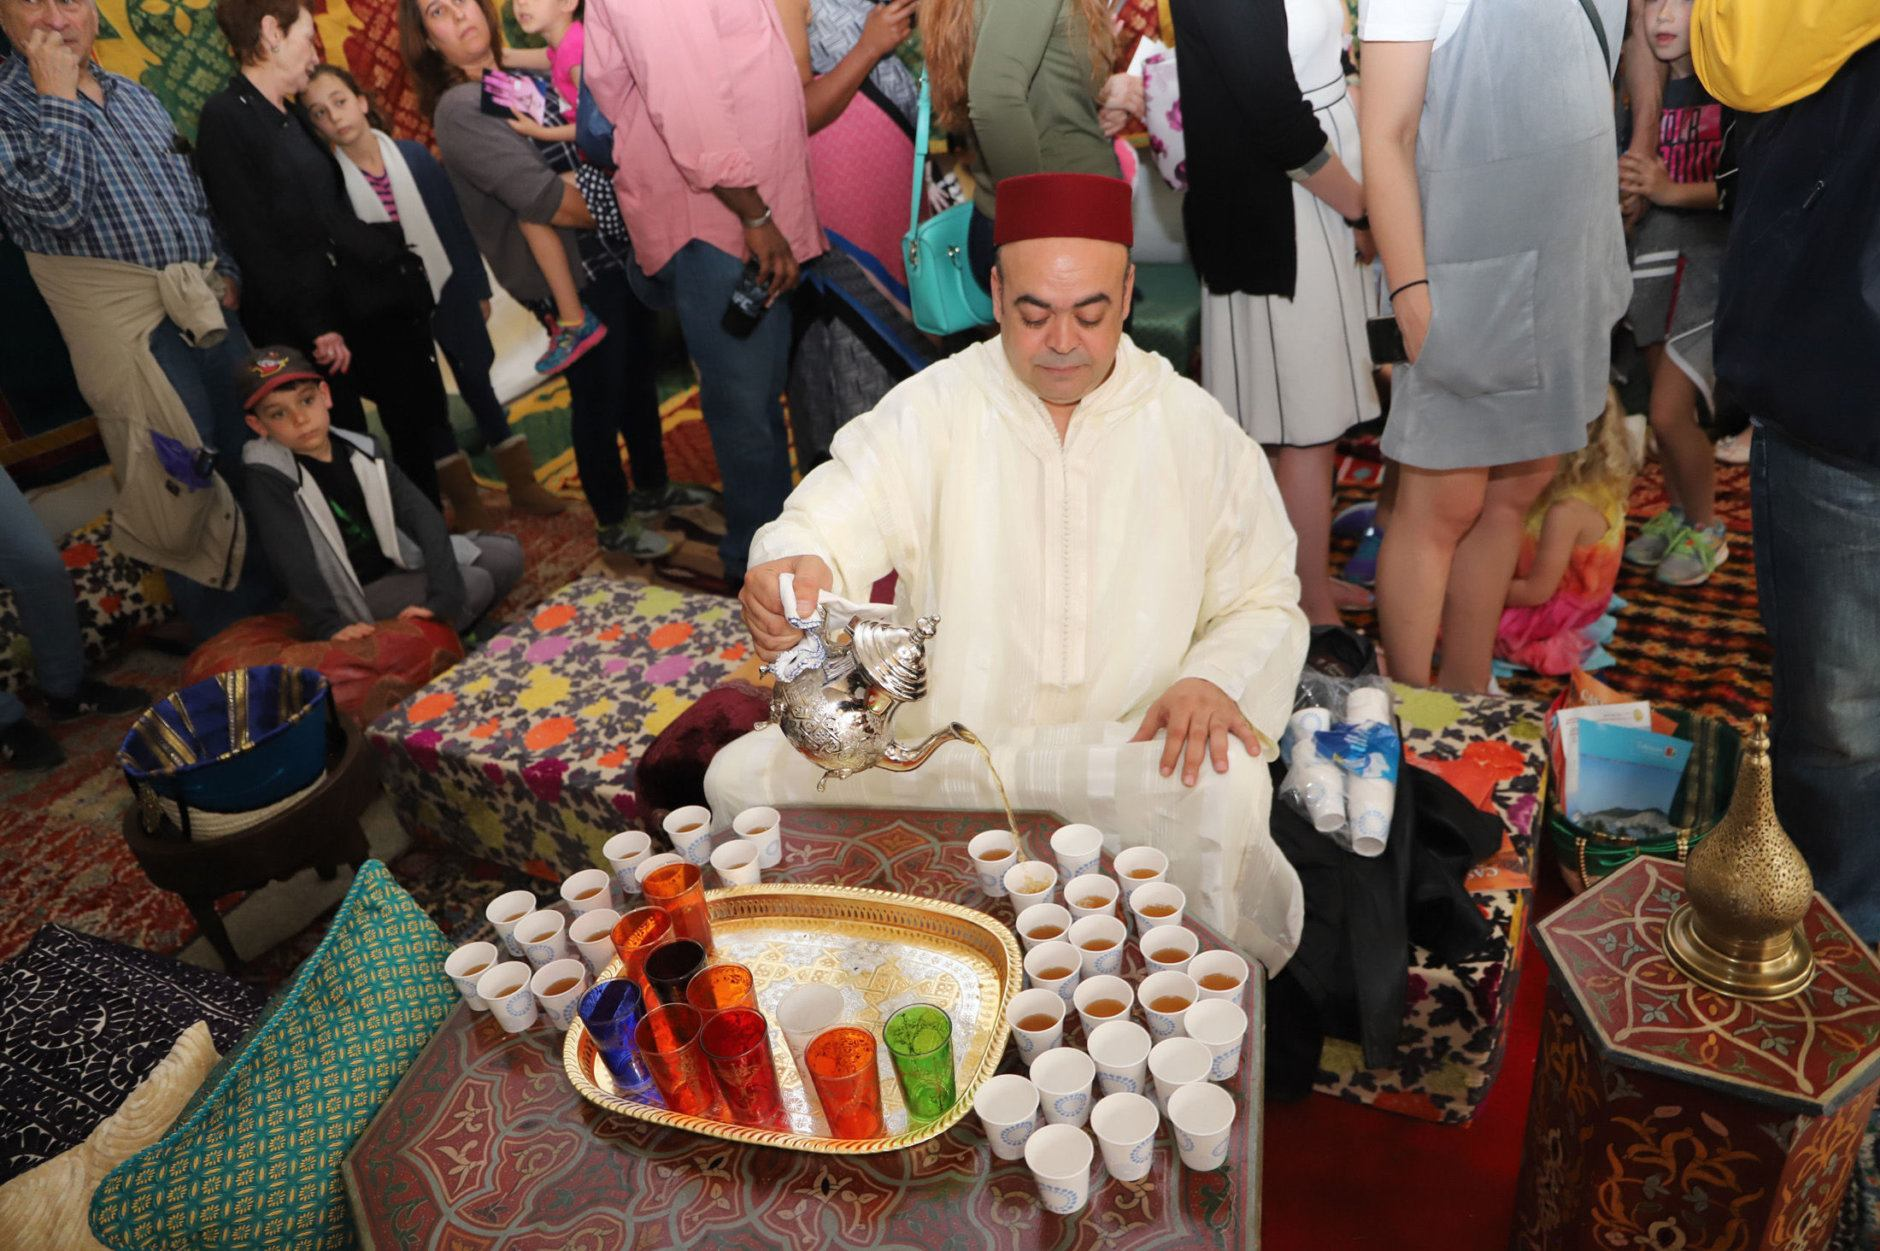 Tea is served at the Moroccan Embasy during 2018's Around the World Embassy Tour. (Courtesy Cultural Tourism DC)